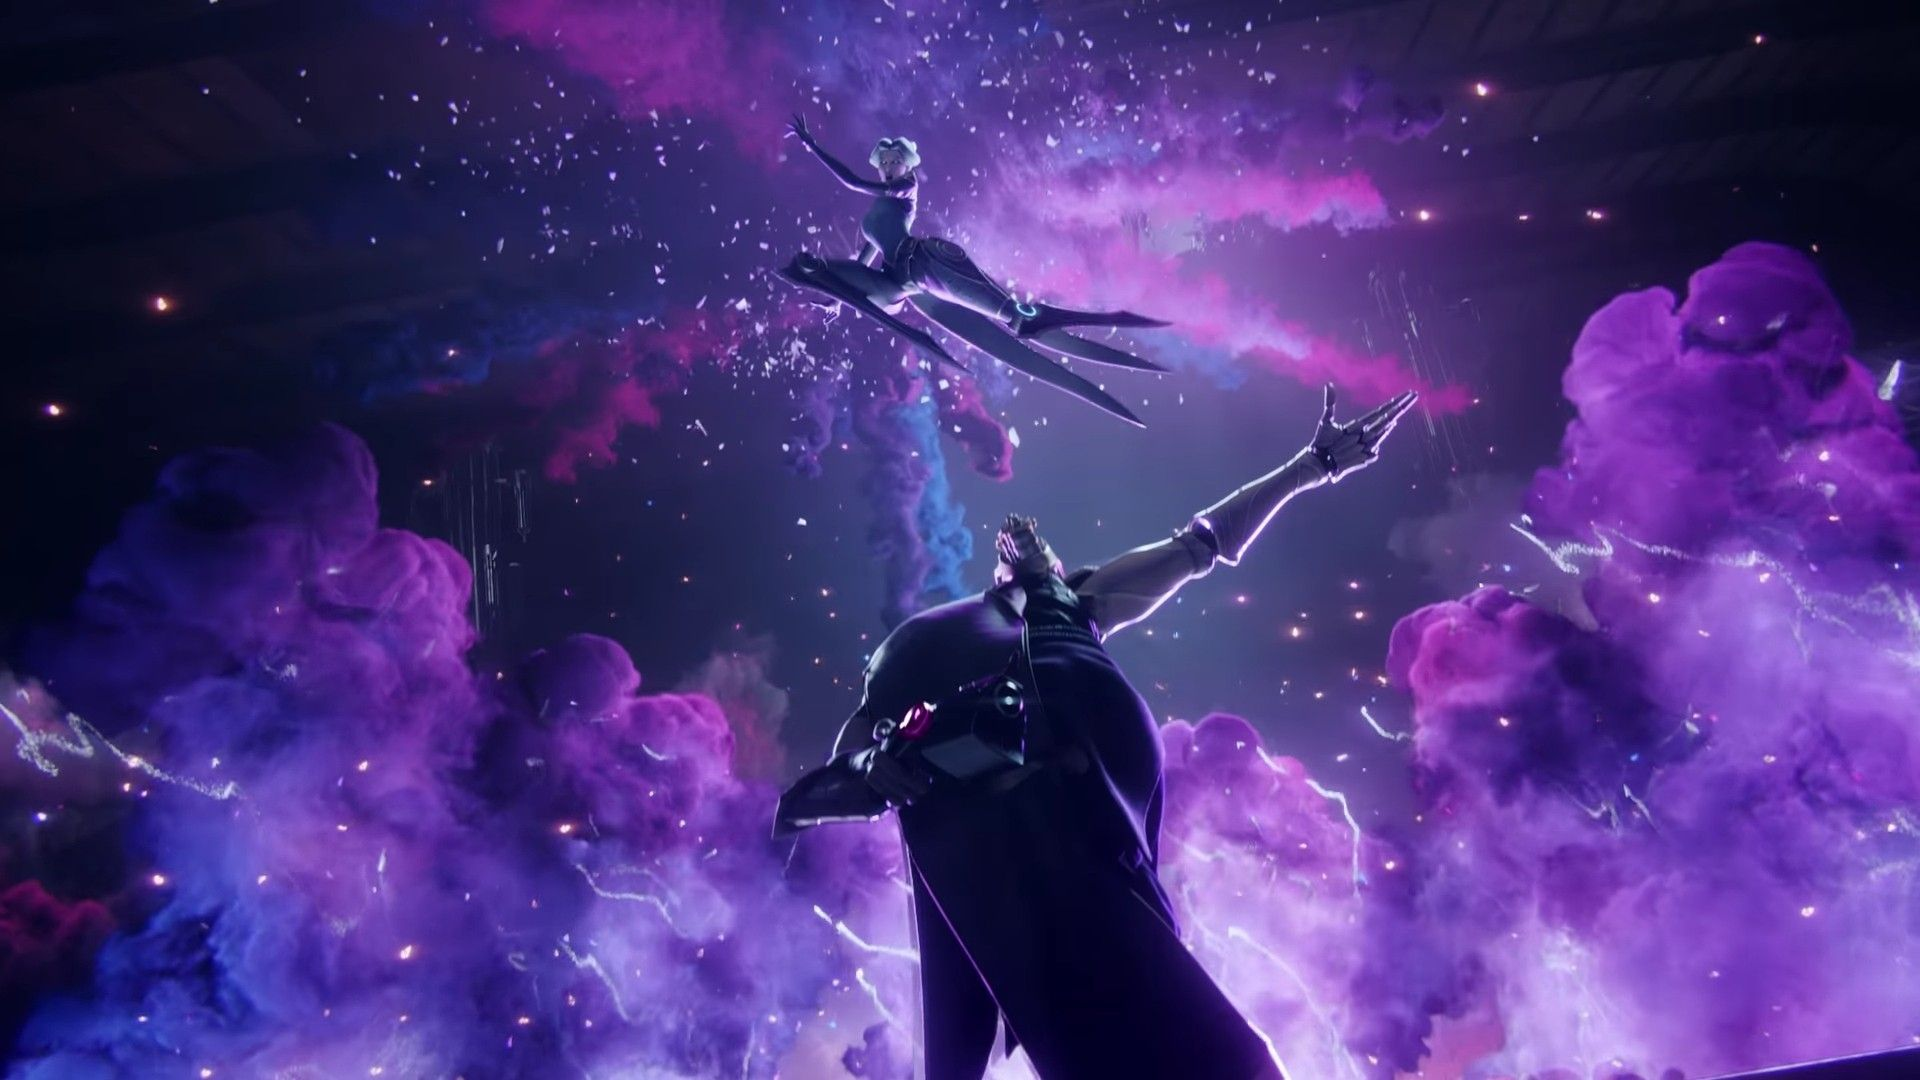 Pin By Manu Mohan On Aesthetic League Of Legends Jhin Lol League Of Legends League Of Legends